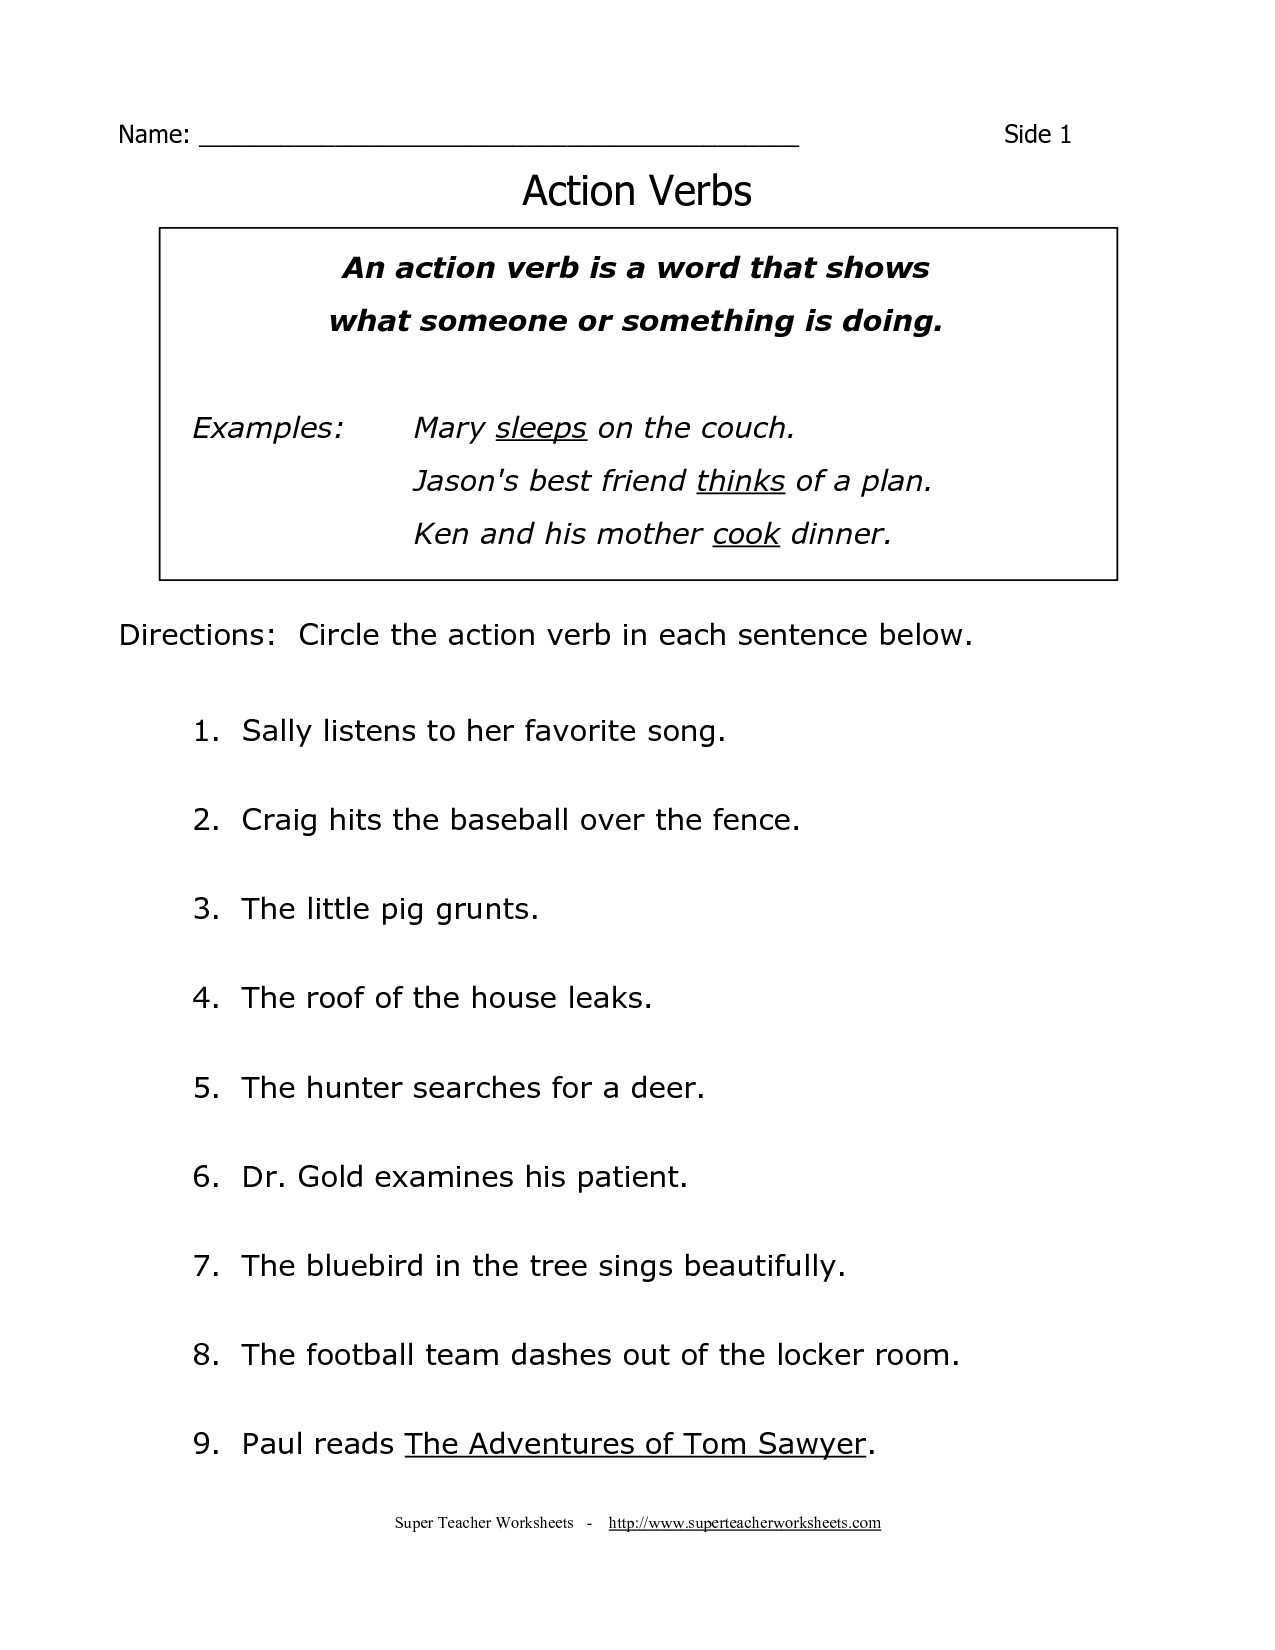 Printables 4th Grade English Worksheets Grammar english grammar worksheets for grade 3 scalien exercises english